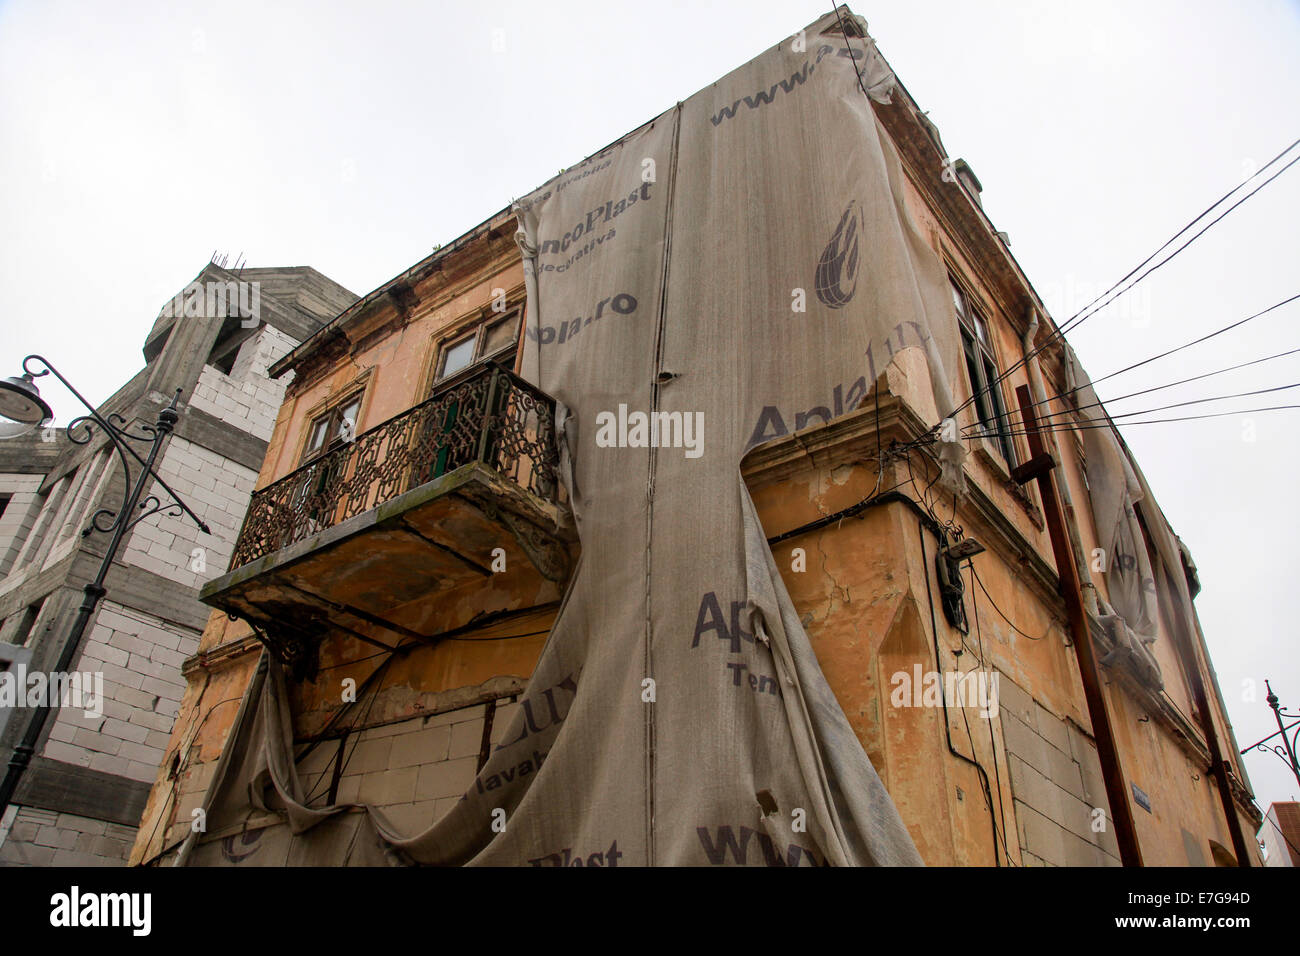 Post communist decay, abandoned building deterioration, Bucharest Romania - Stock Image